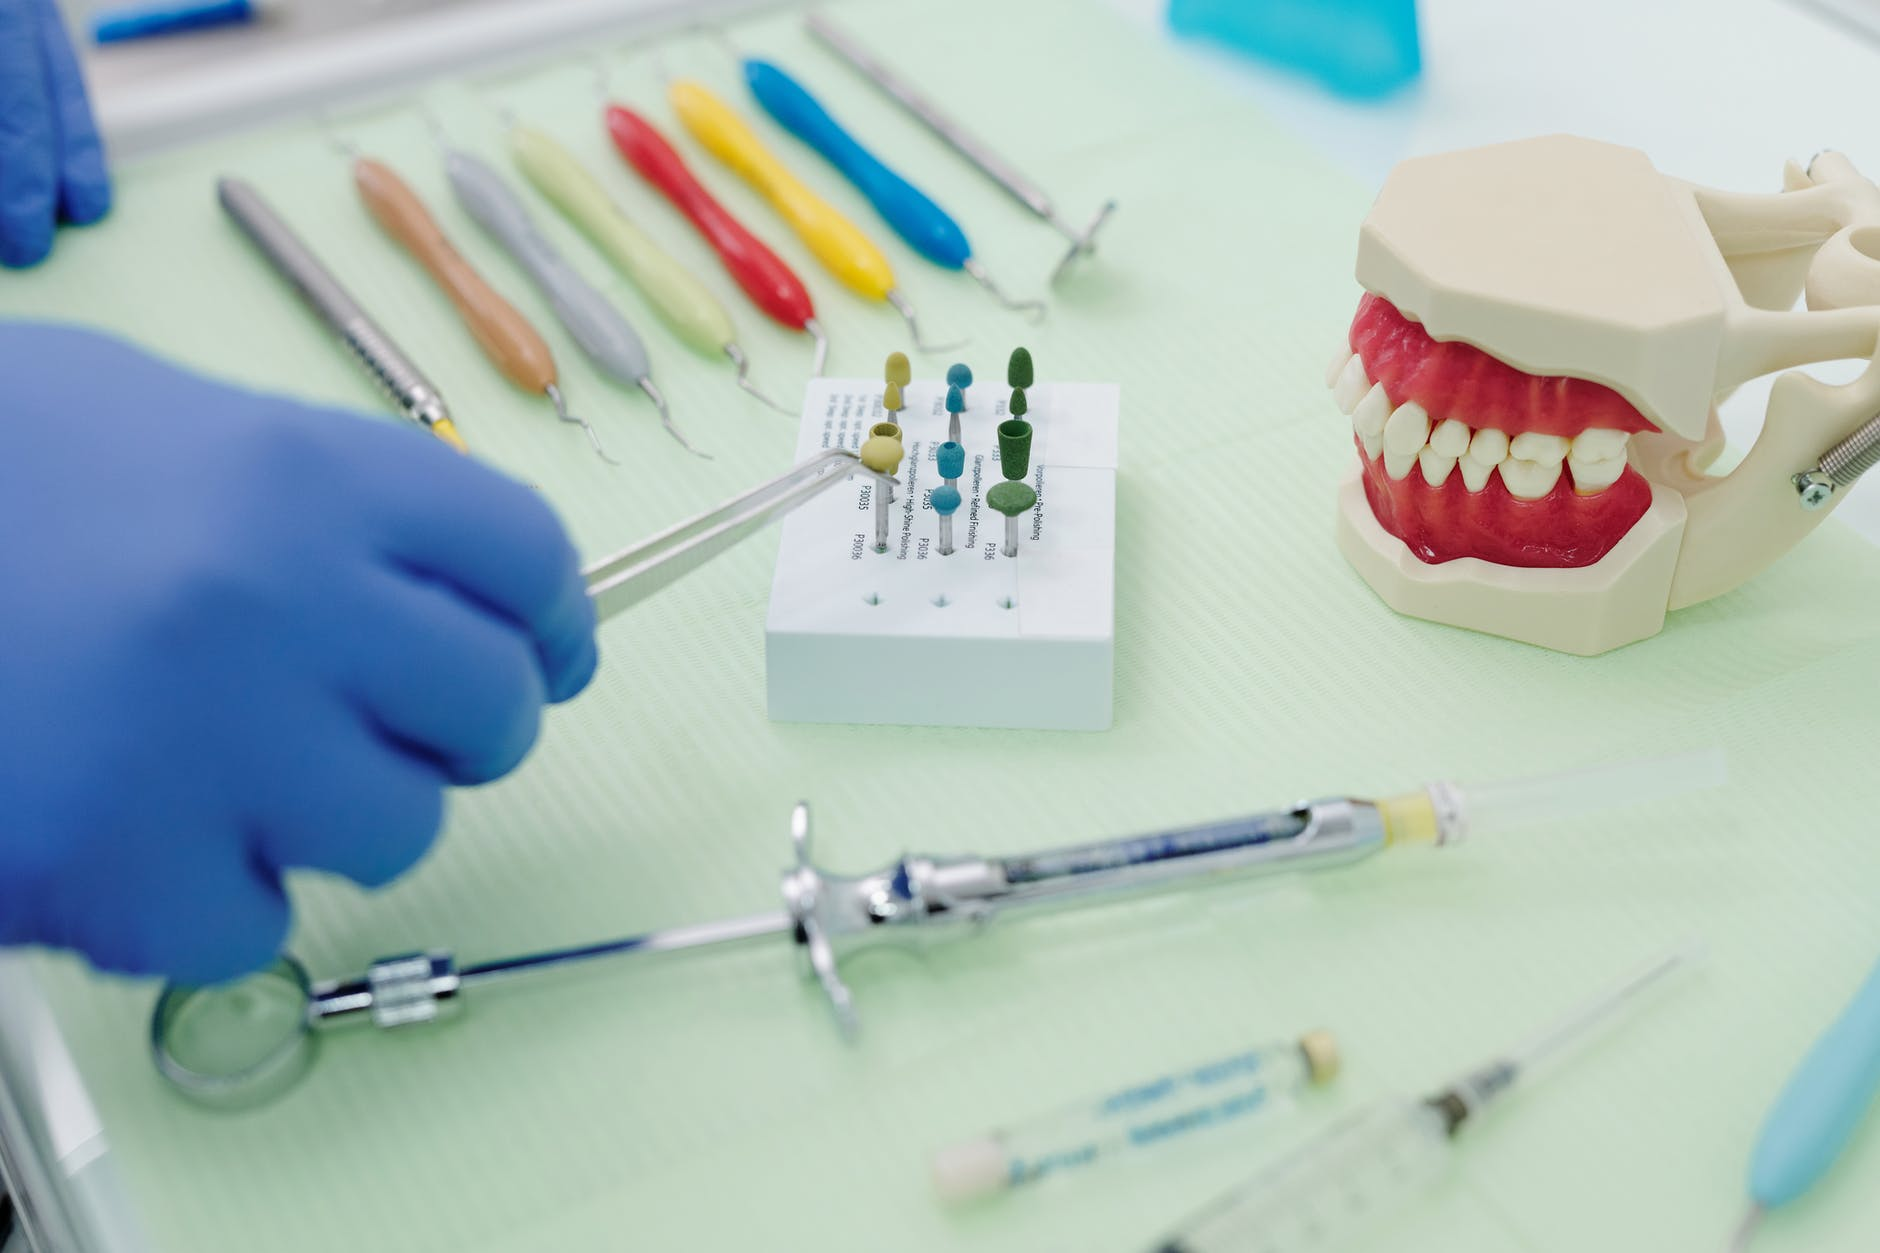 crop unrecognizable stomatologist with tweezers and dental tools in clinic